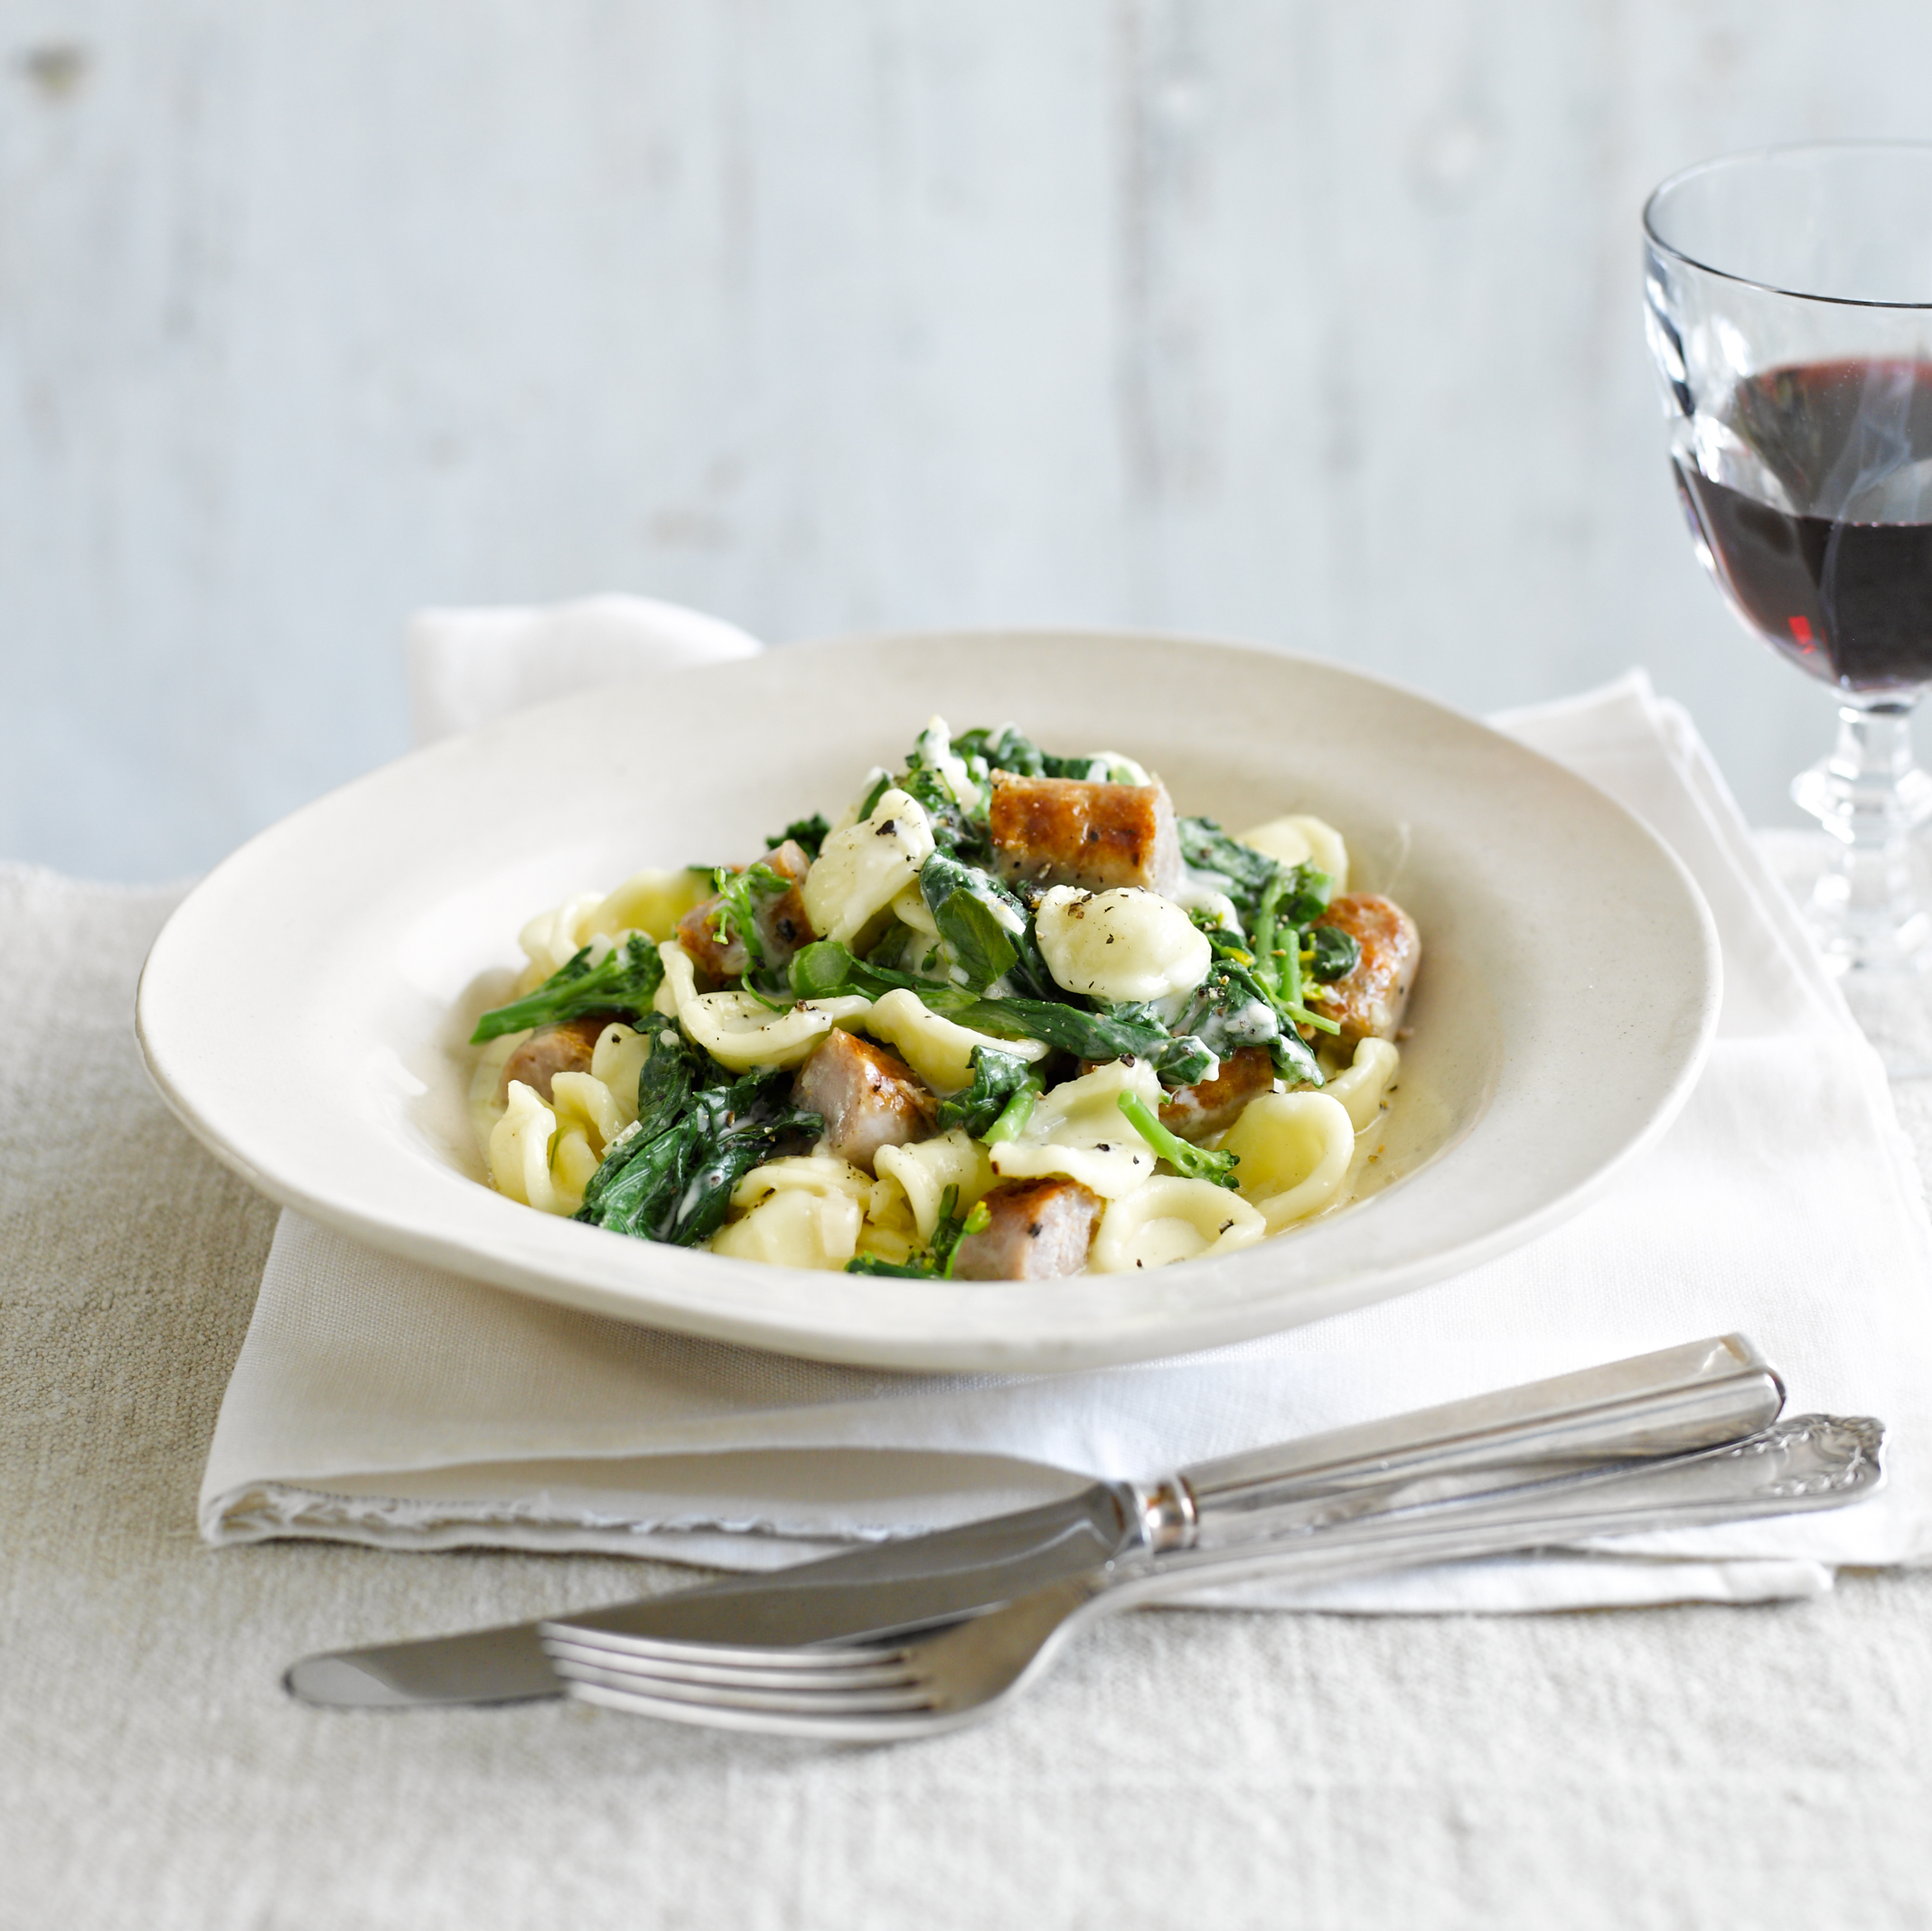 Creamy Orecchiette with Broccoli Rabe  Sausage RecipeFrancis